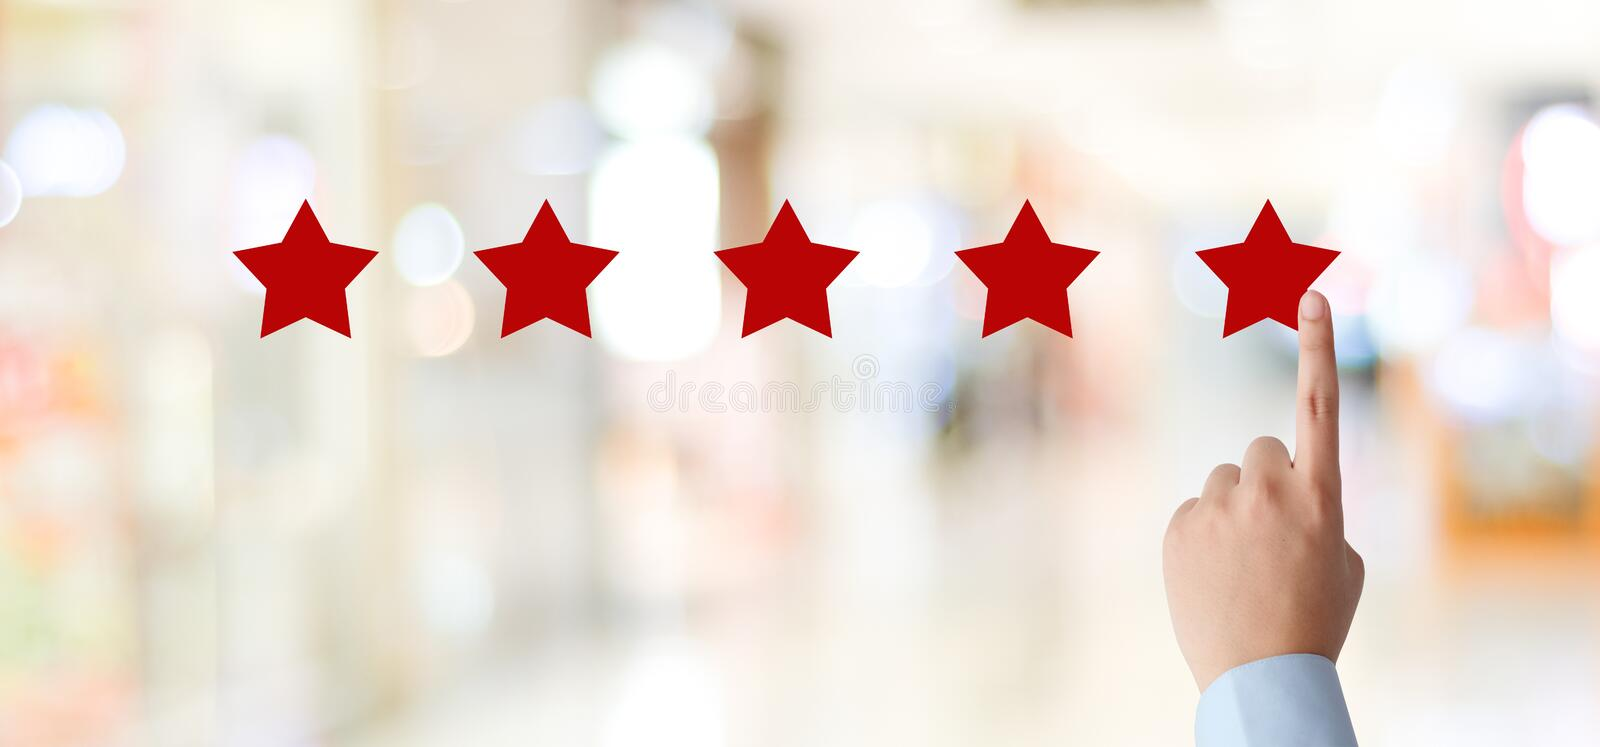 Man hand pointing red five star over blur background, customer excellent rating satisfacation, customer feedback, business concept royalty free stock images